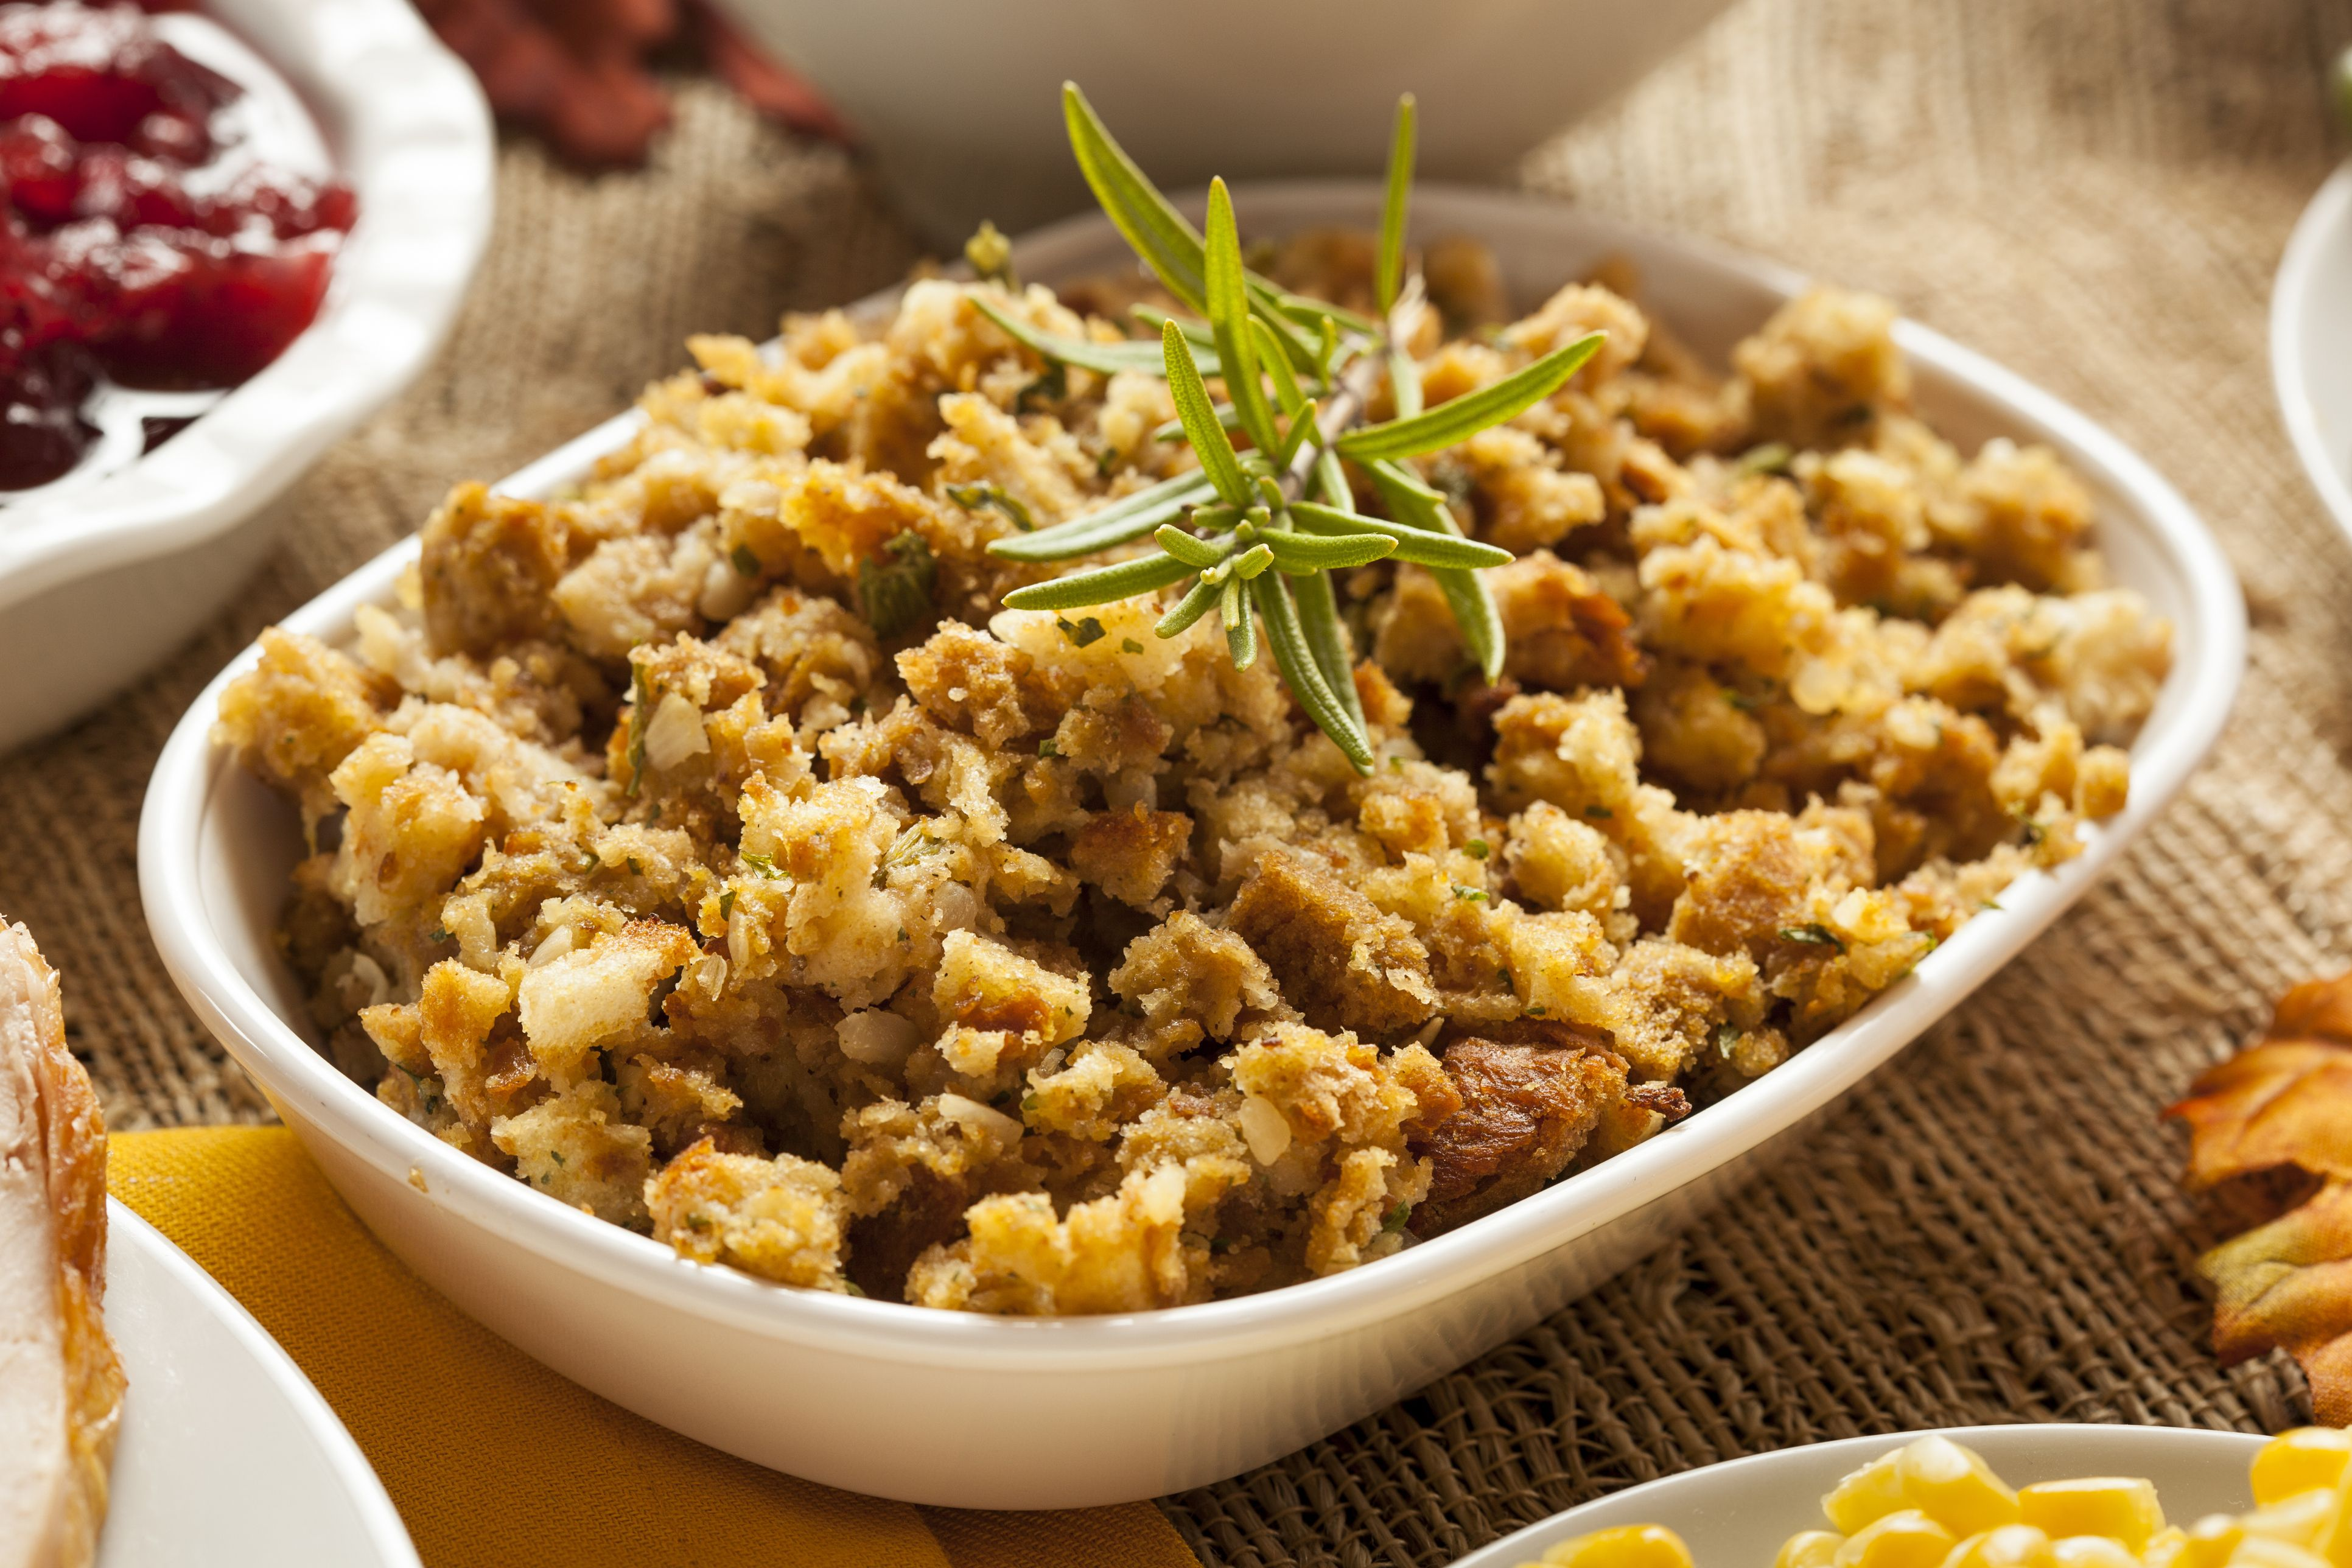 How to make irish stuffing with bread crumbs